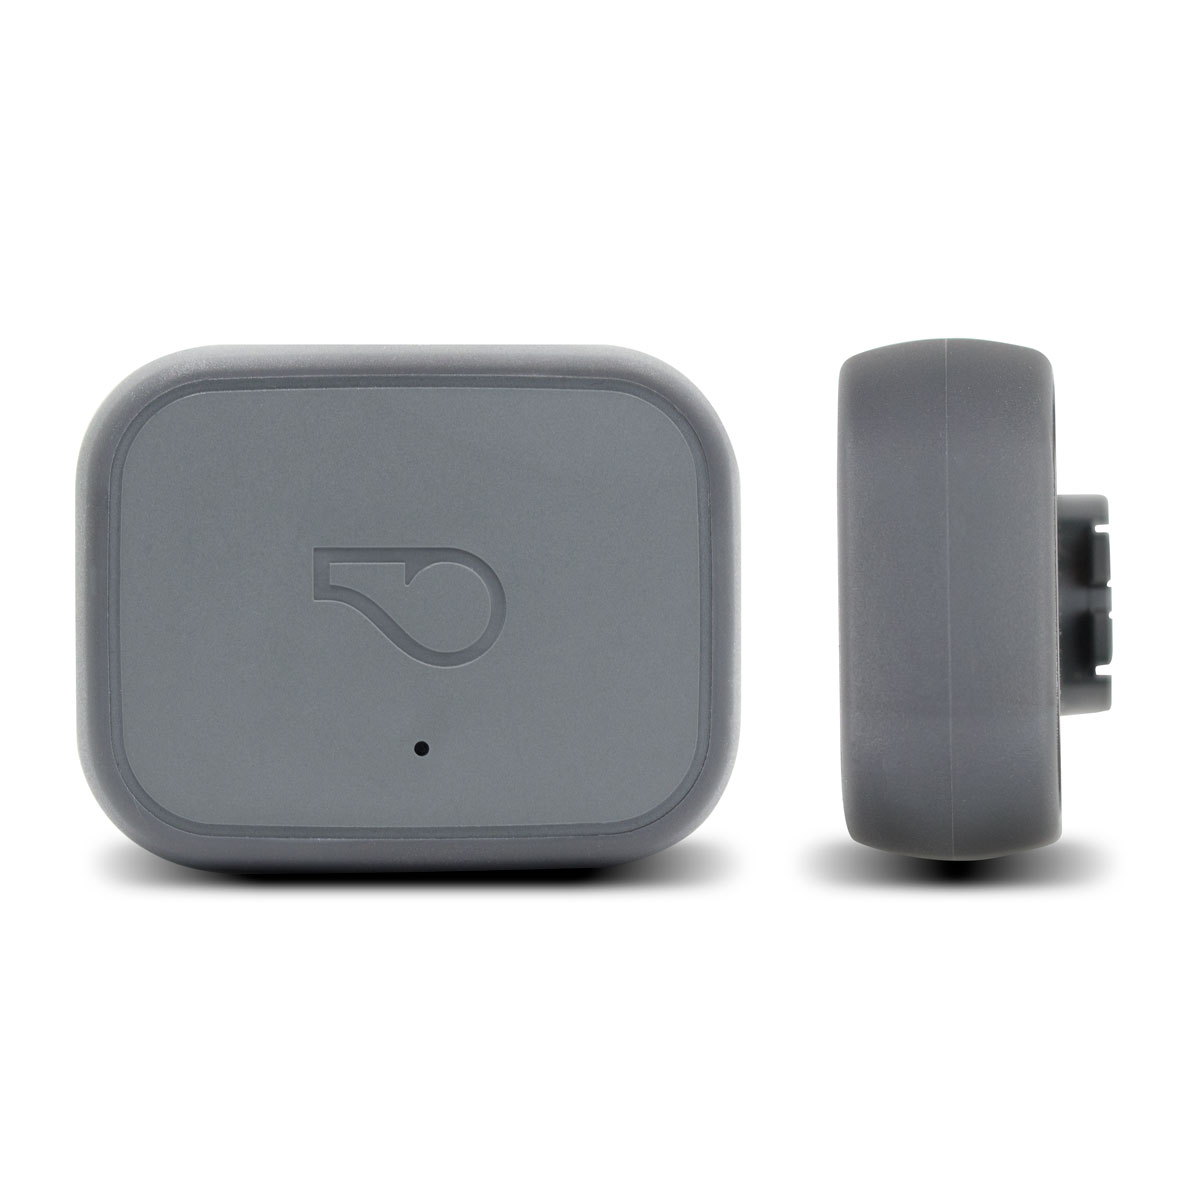 Product image of Whistle 3 GPS pet tracker